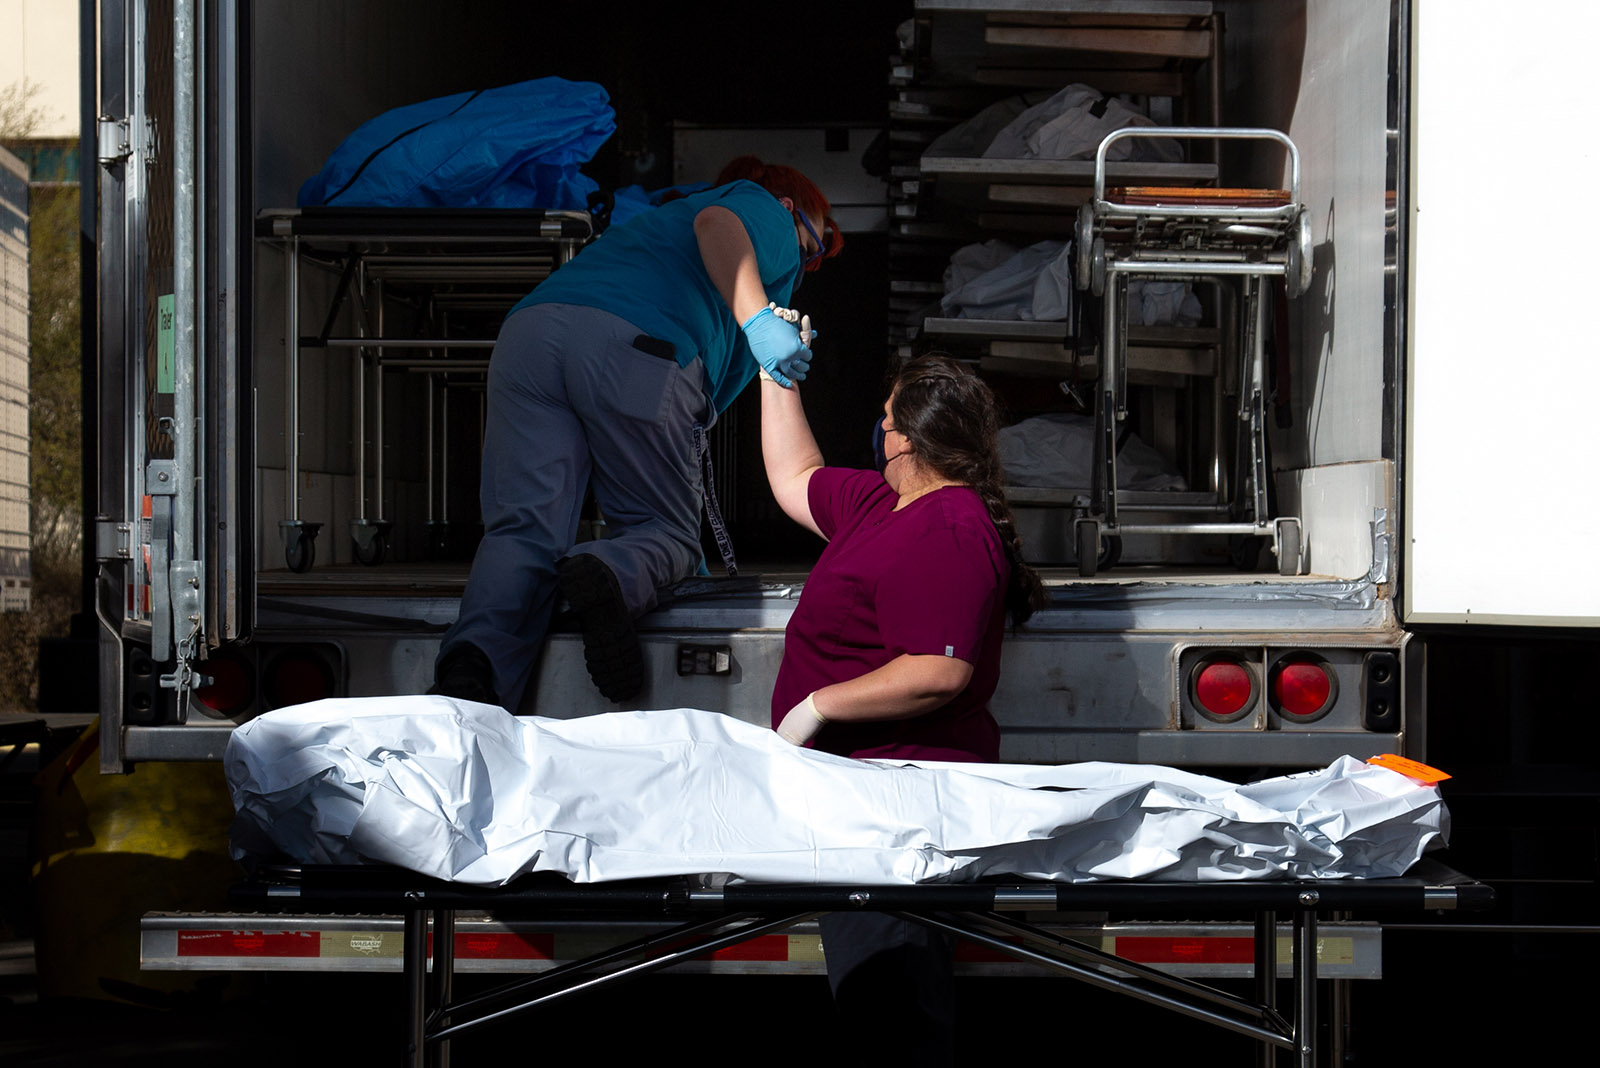 Employees prepare to move a body into a refrigerated semi-truck at the Pima County Office of the Medical Examiner on January 14, in Tucson, Arizona.